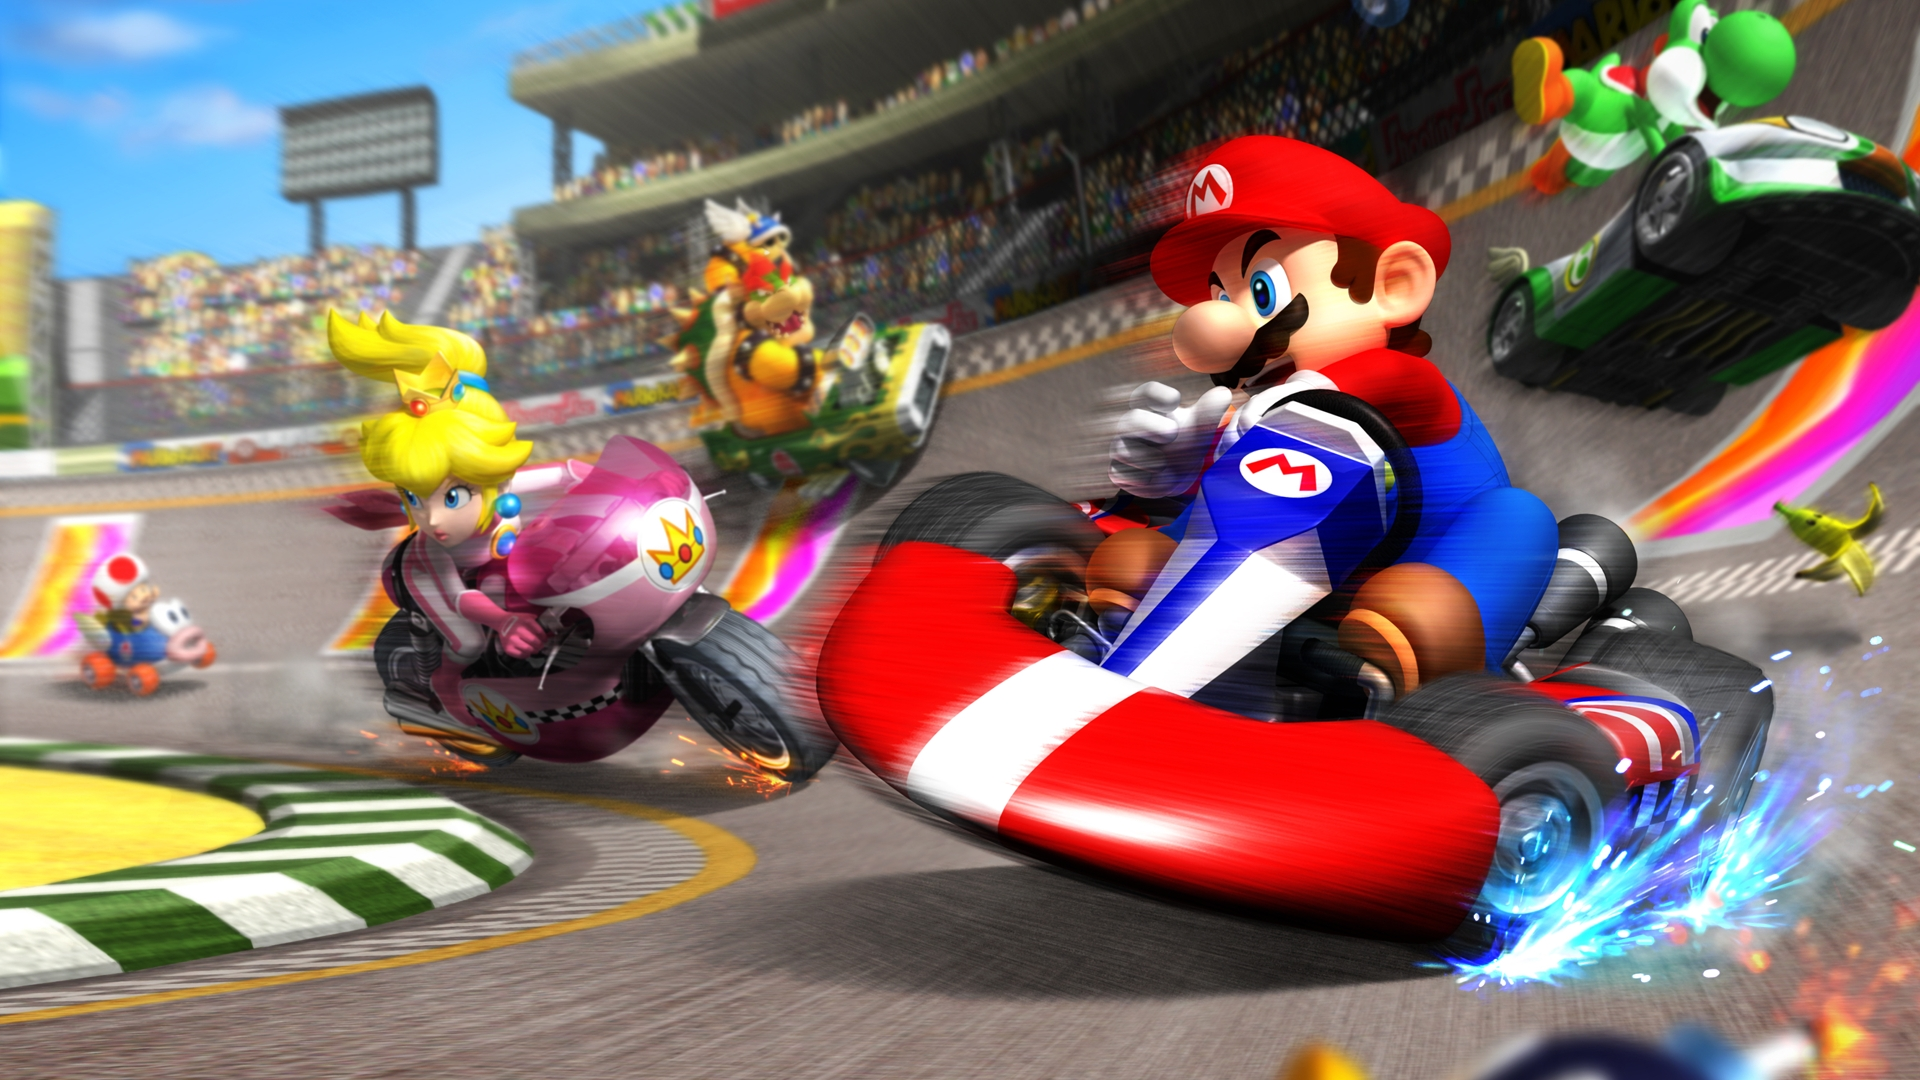 Image result for Mario kart ds 1920x1080